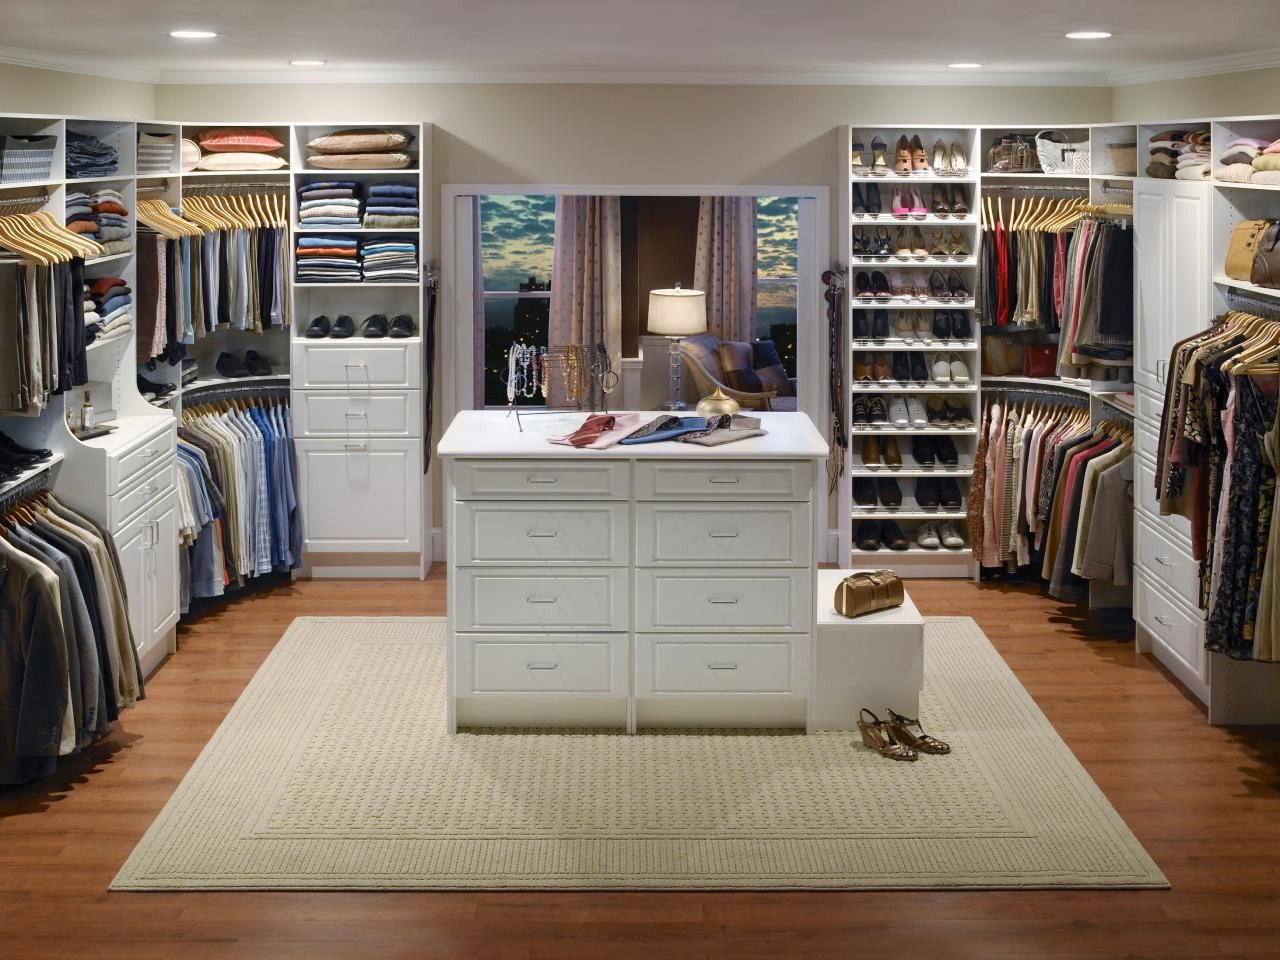 Master bathrooms with built in closets - What You Should Know About Closets